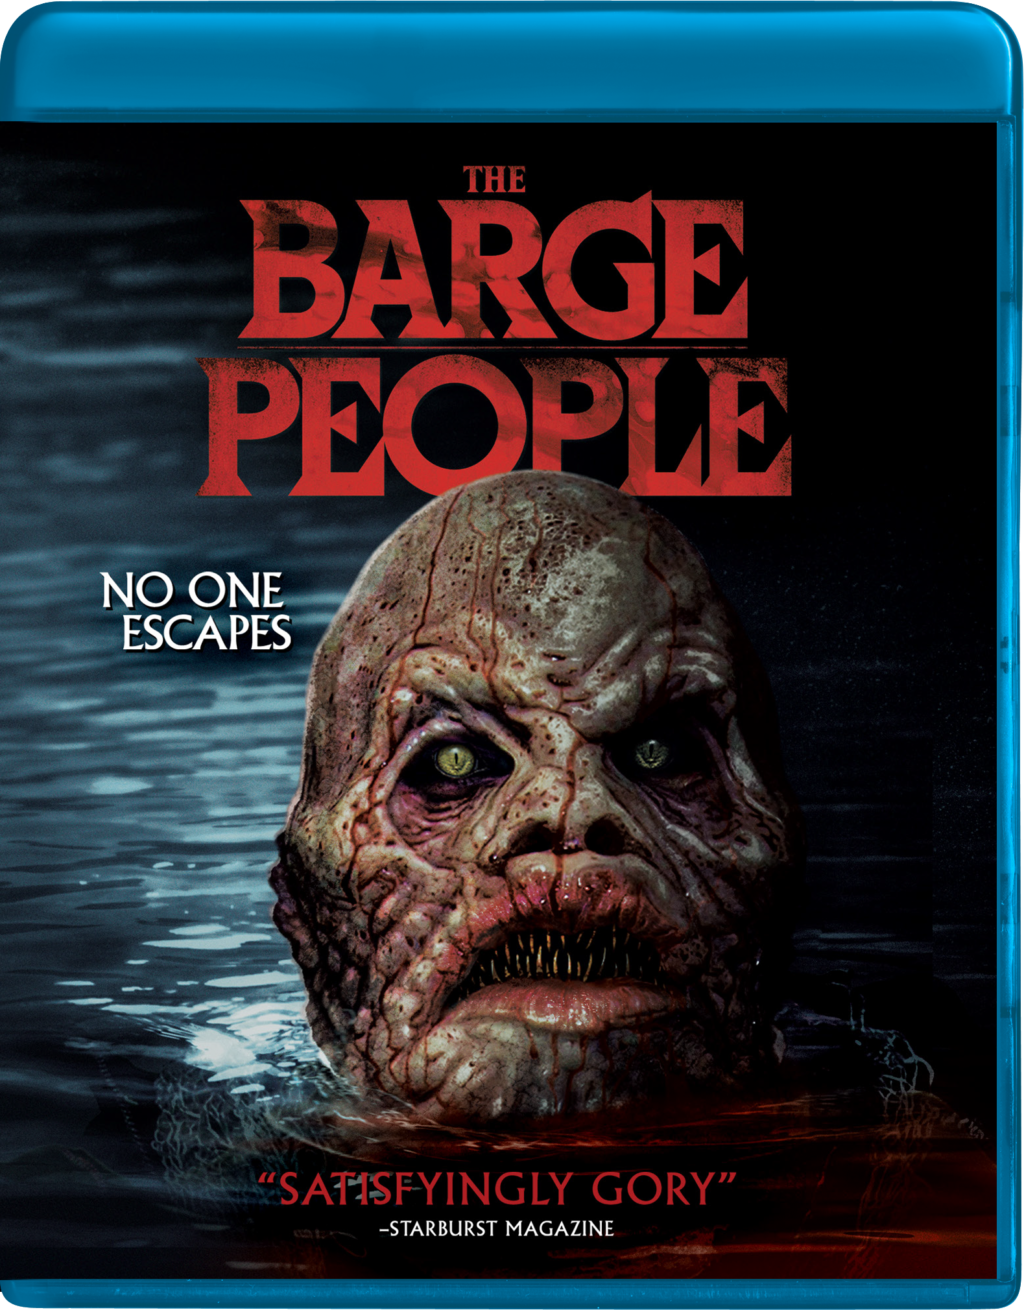 BARGE PEOPLE BD HIC 1024x1310 - Trailer: Go Below the Surface with THE BARGE PEOPLE on August 18th